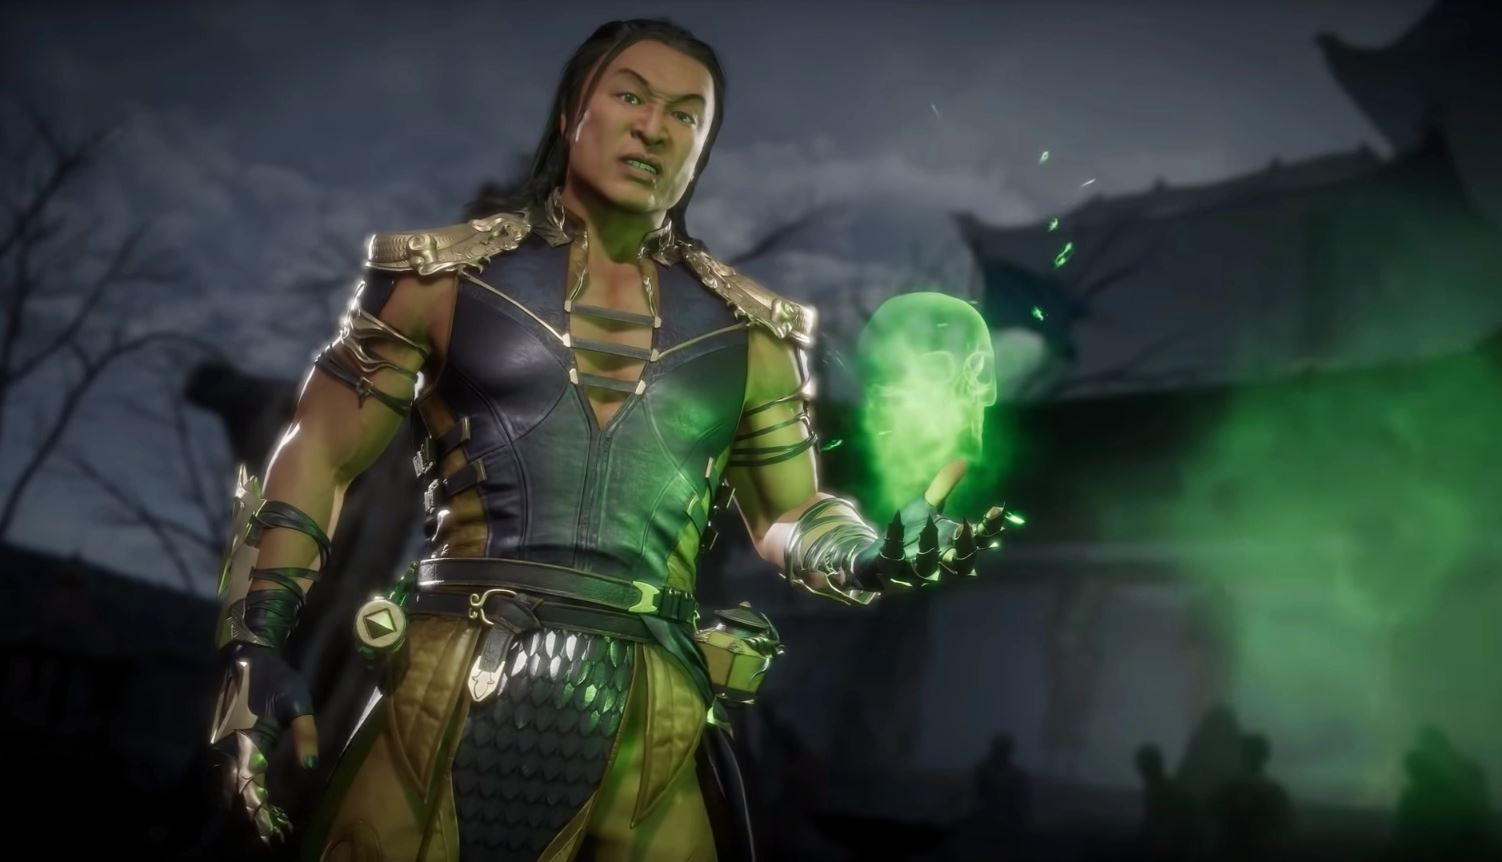 To get Shang Tsung in Mortal Kombat 11, you'll either need to purchase him as individual DLC, or purchase the Kombat Pack.